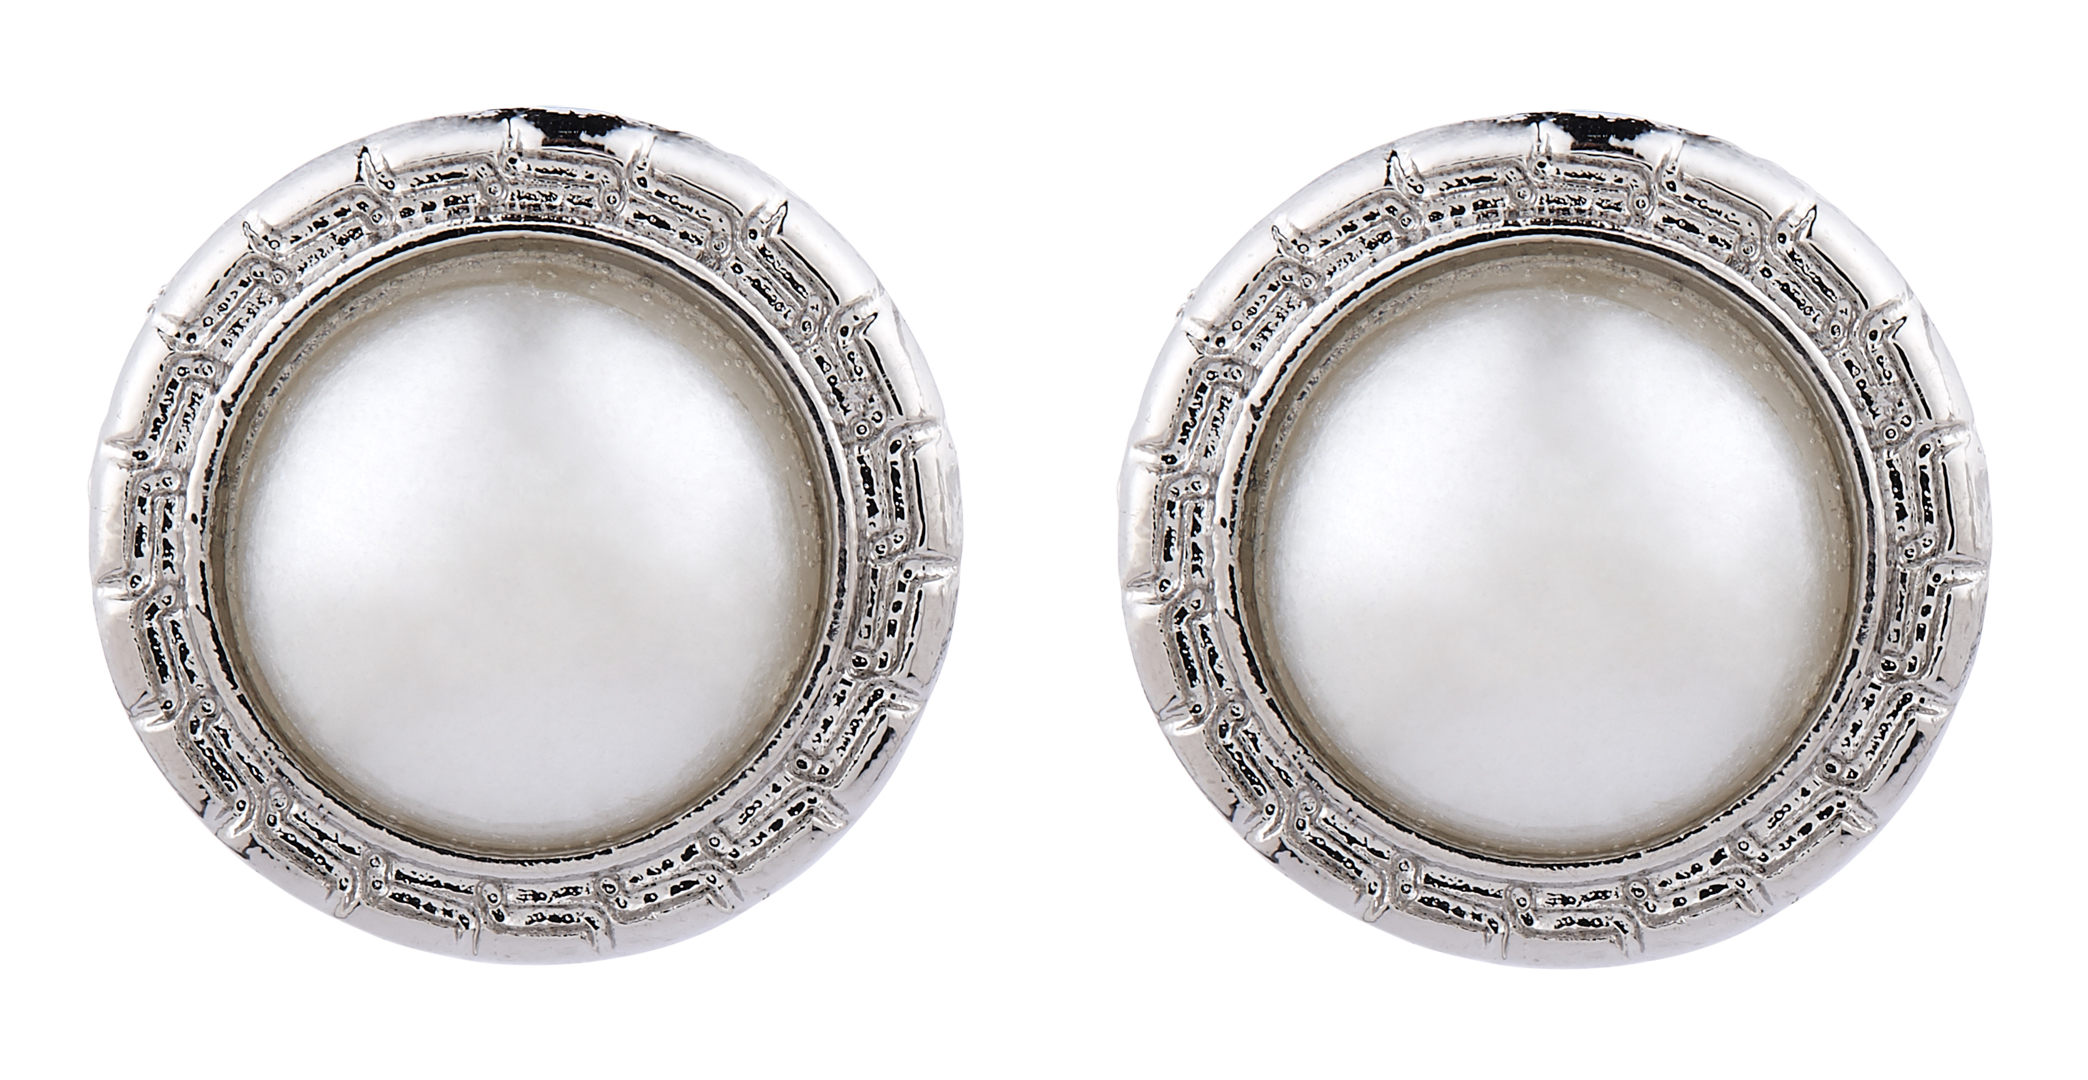 Clip On Earrings - Wonda - silver stud earring with a central pearl